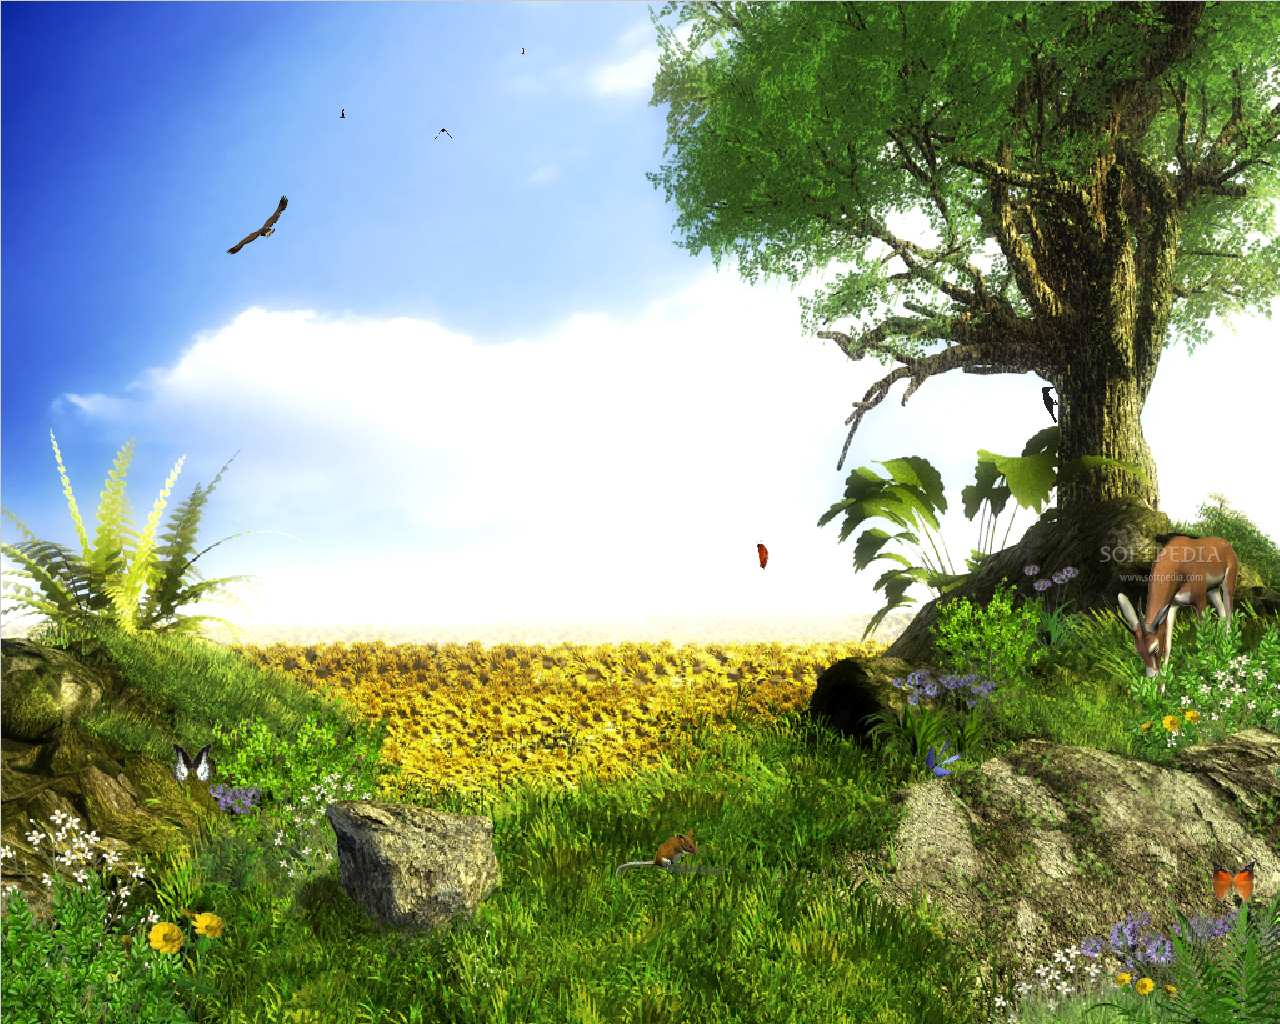 Animated Mobilew Wallpapers 3d Animated Mobile Wallpaper 1280x1024